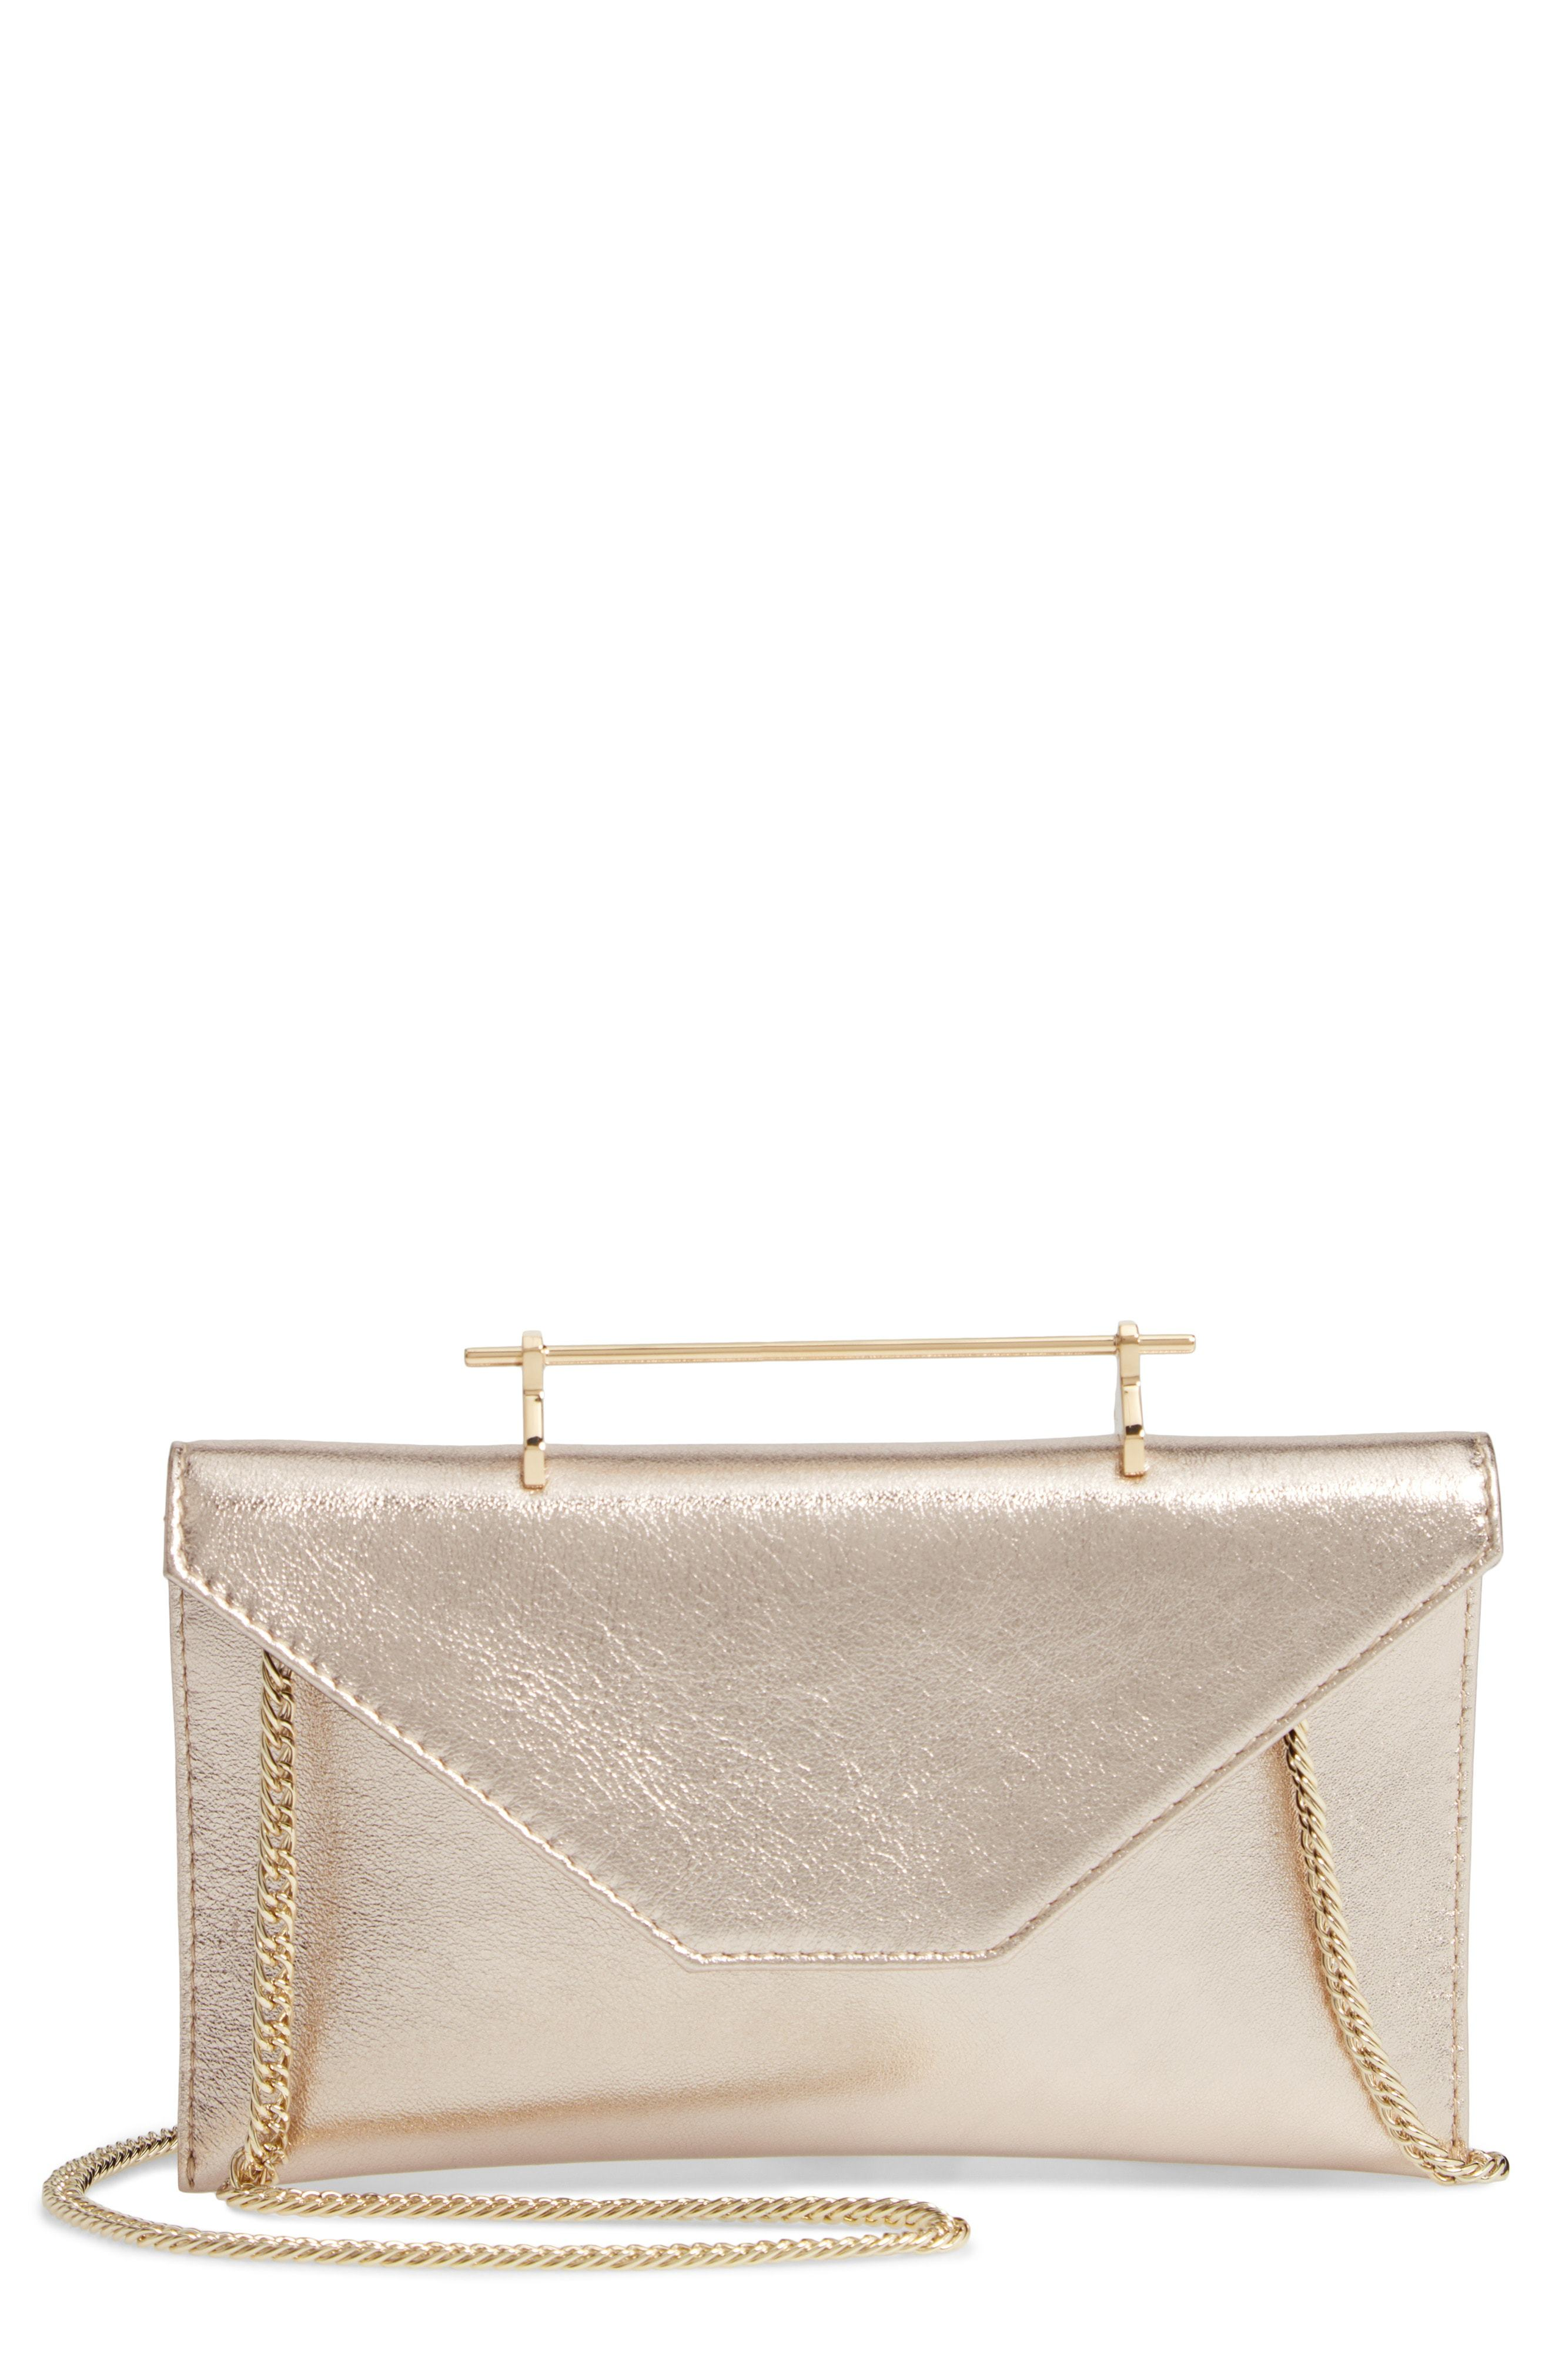 M2MALLETIE R Annabelle Metallic Calfskin Leather Clutch